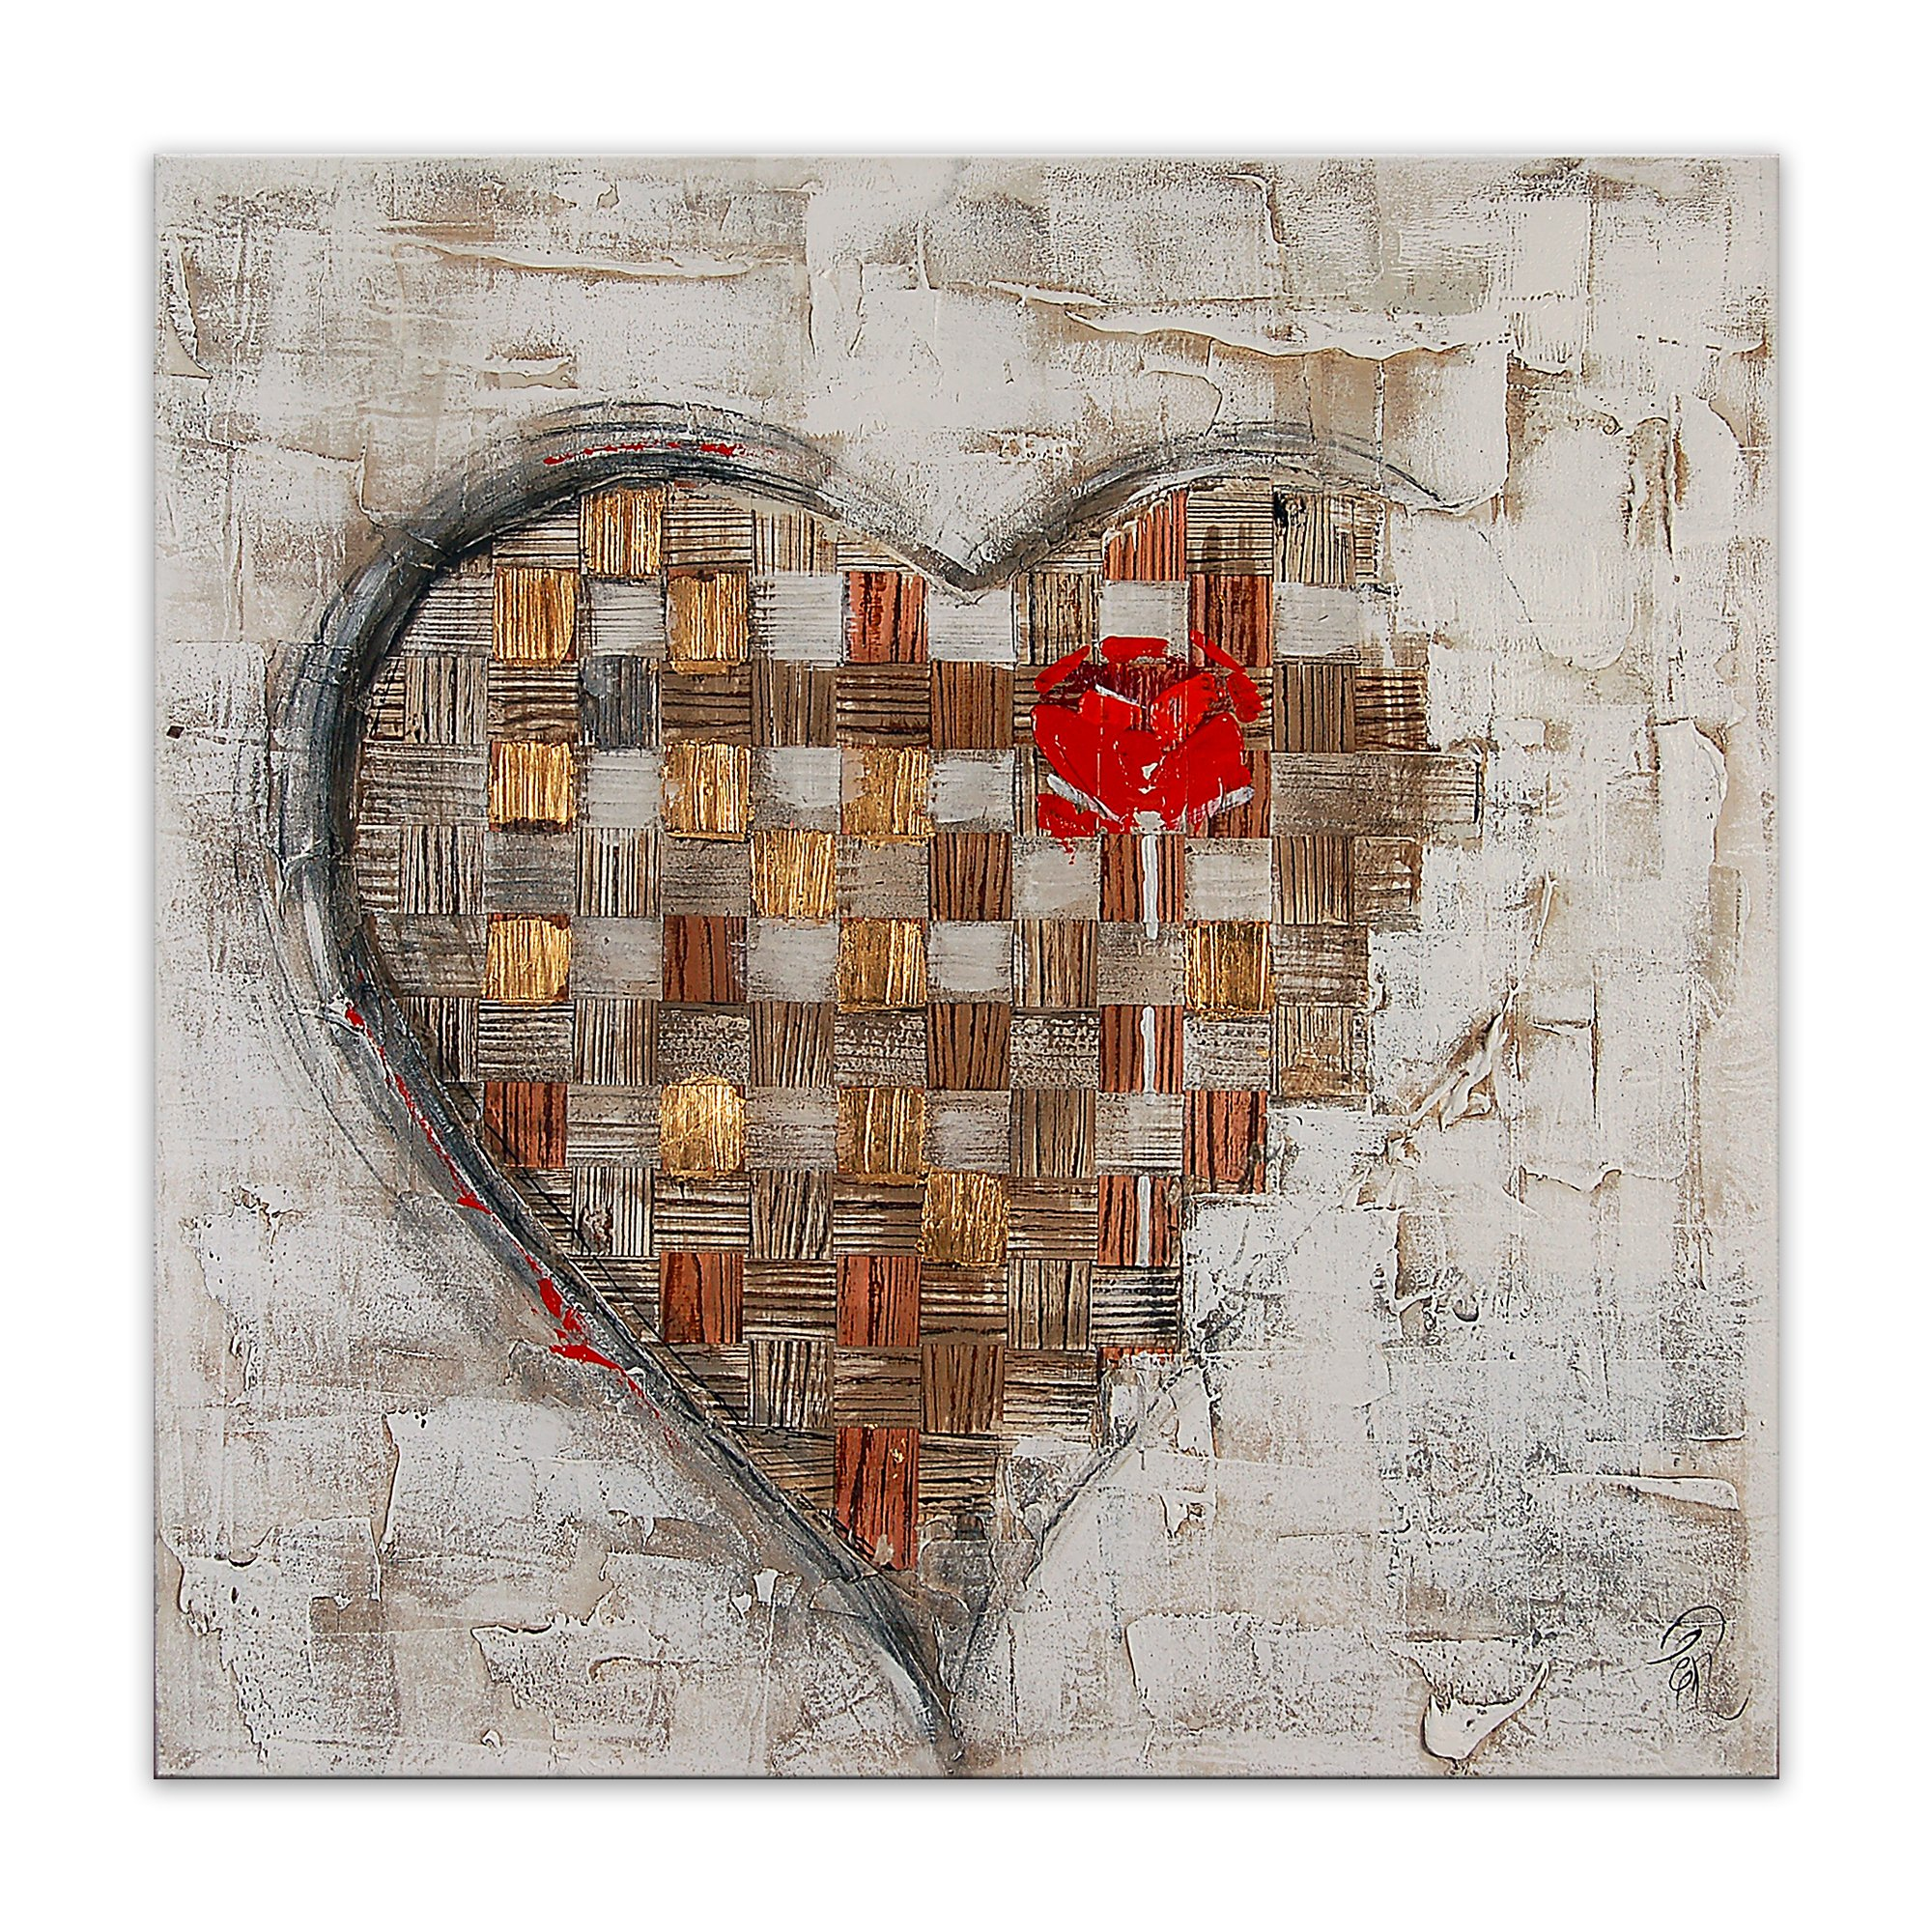 World Art TW60097 Aesthetic Wooden Frame Heart with Rose 80x80x3.5 cm Size: 32 x 32 x 2 Inch